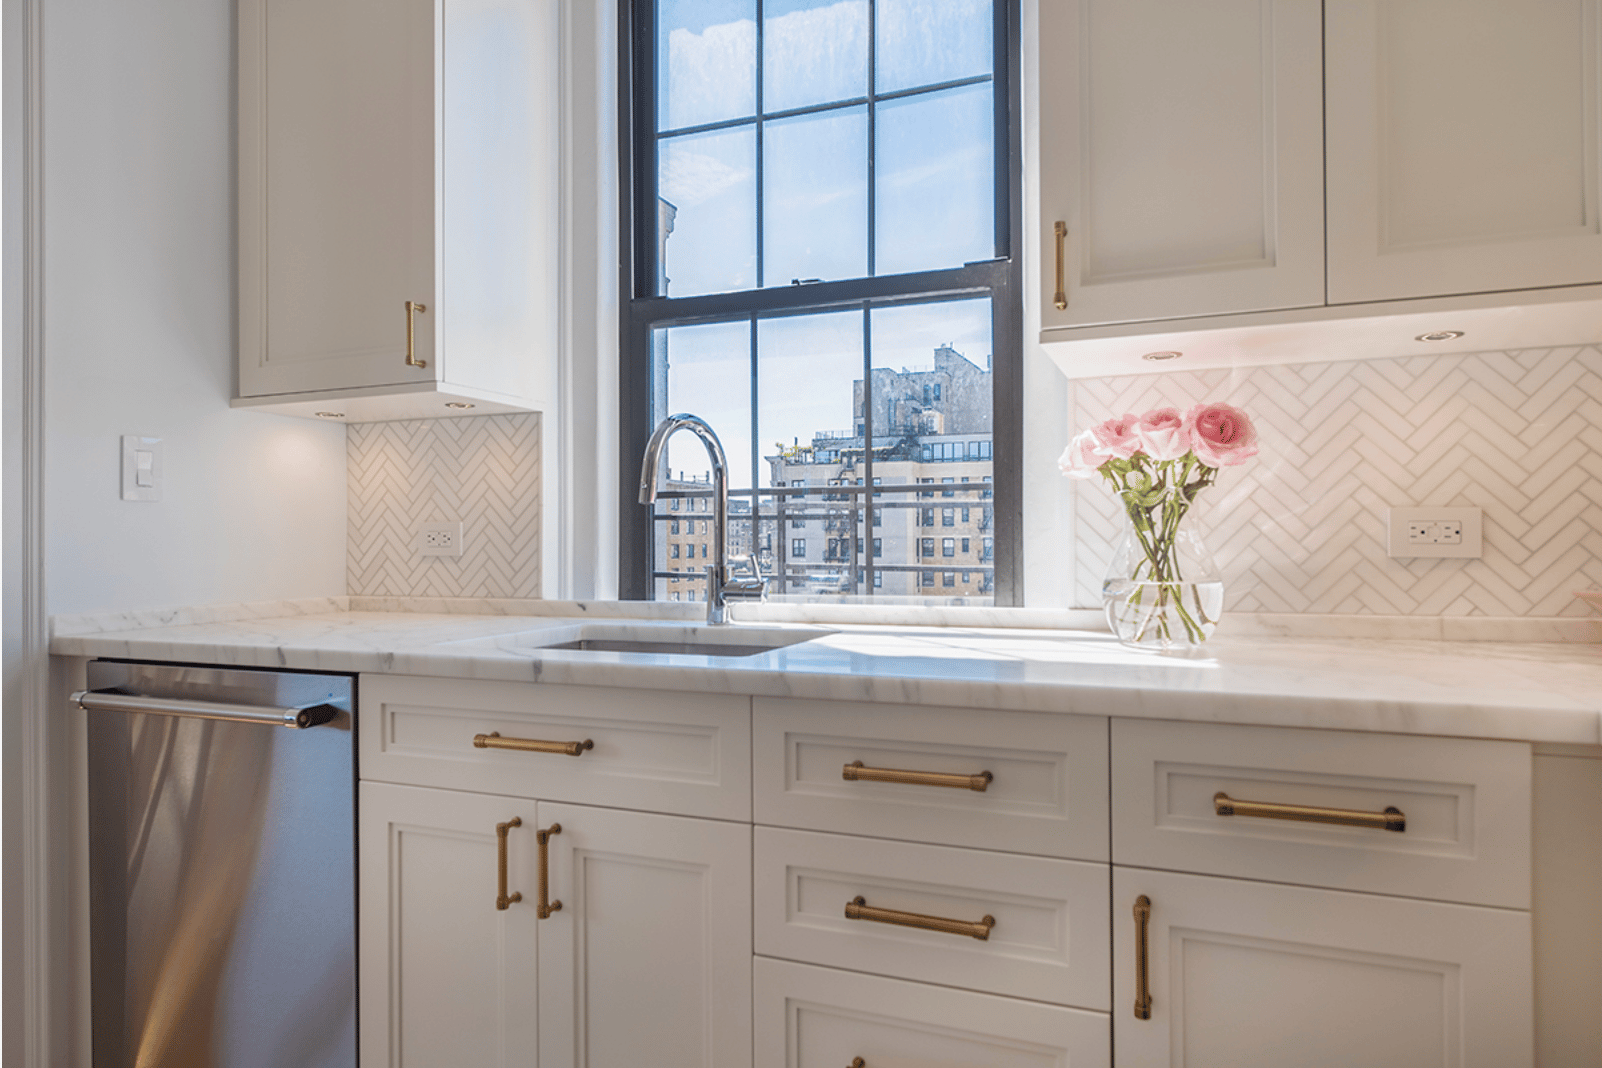 NYC Kitchen Envy! An Upper West Side Kitchen Remodel That Inspires